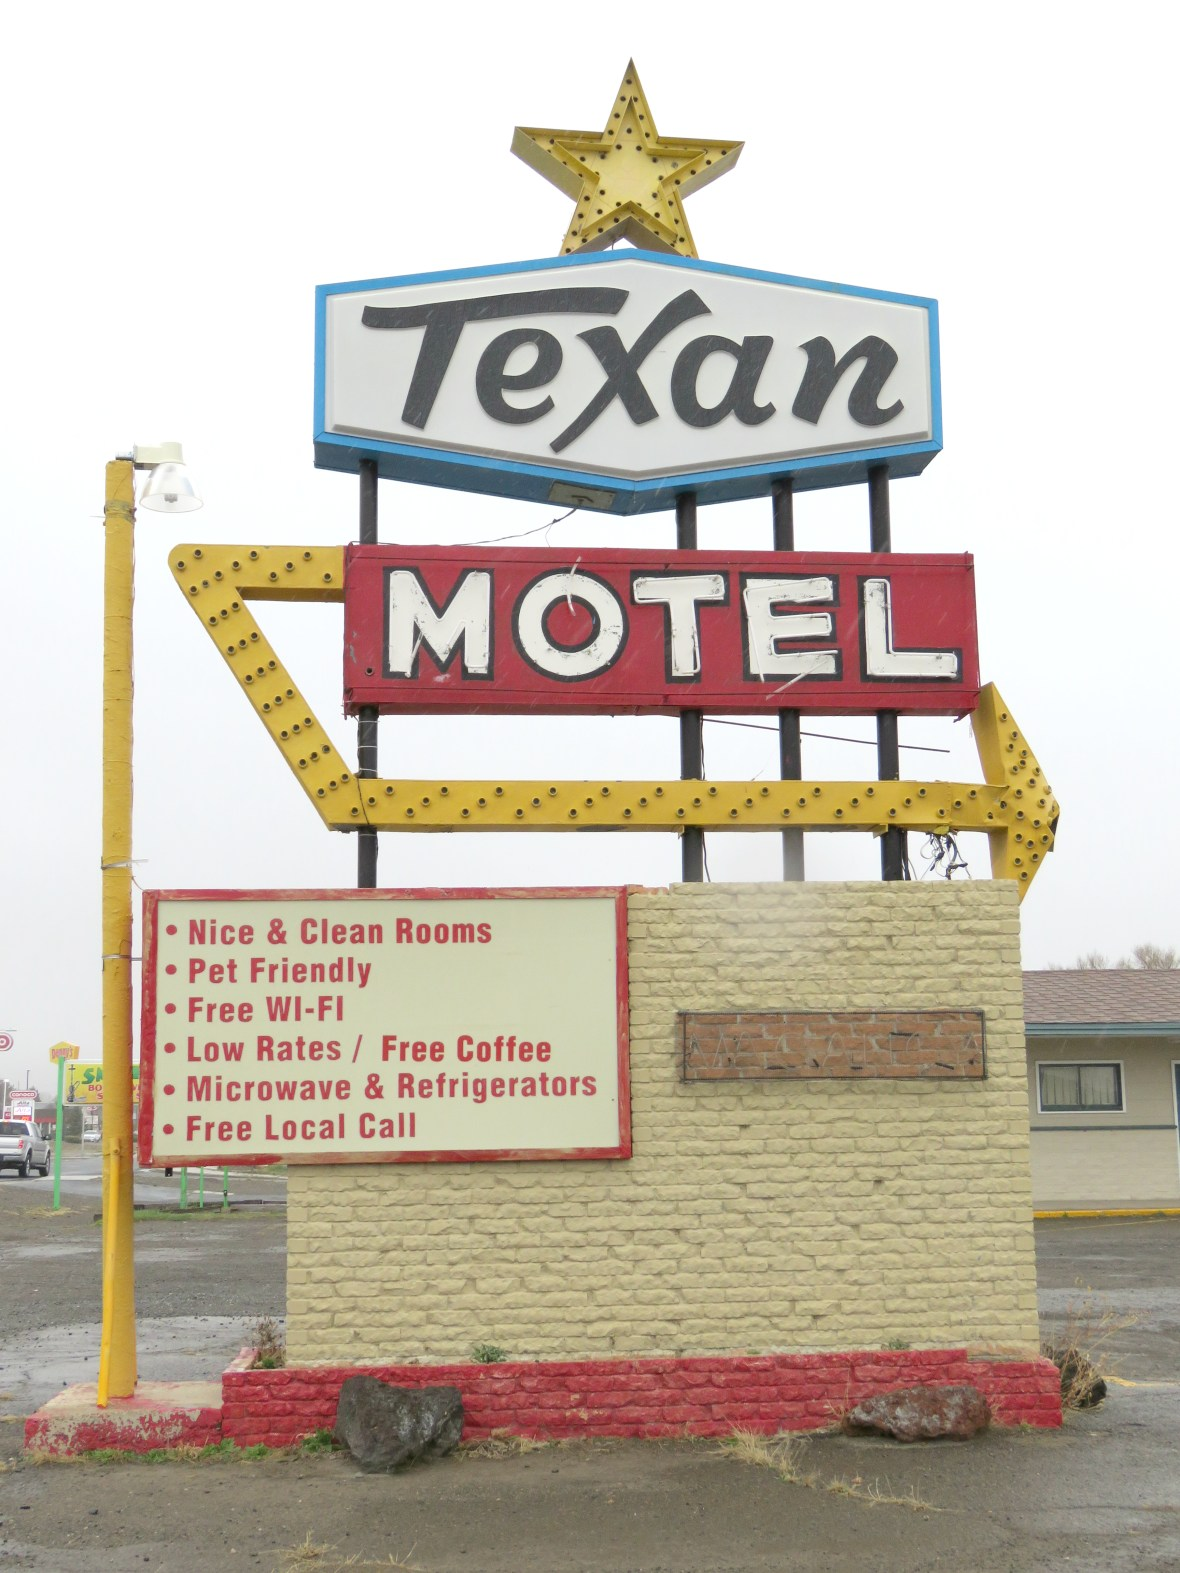 Texan Motel - 201 Clayton Road, Raton, New Mexico U.S.A. - April 18, 2016